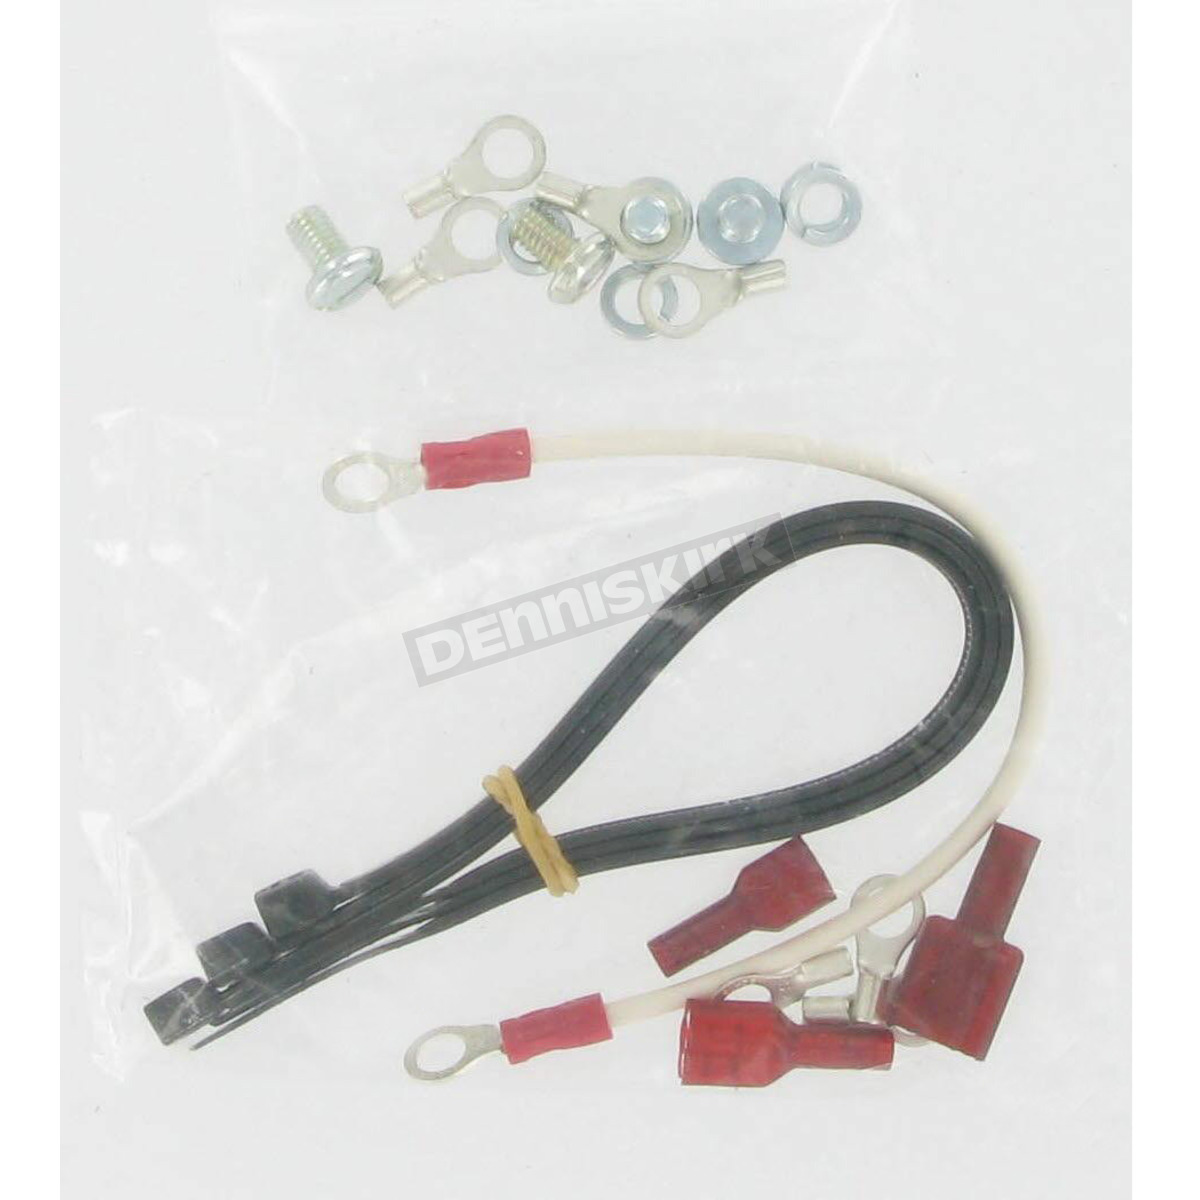 2000I Dual-Plug/Single-Fire Electronic Ignition Kit - D2KI-3P